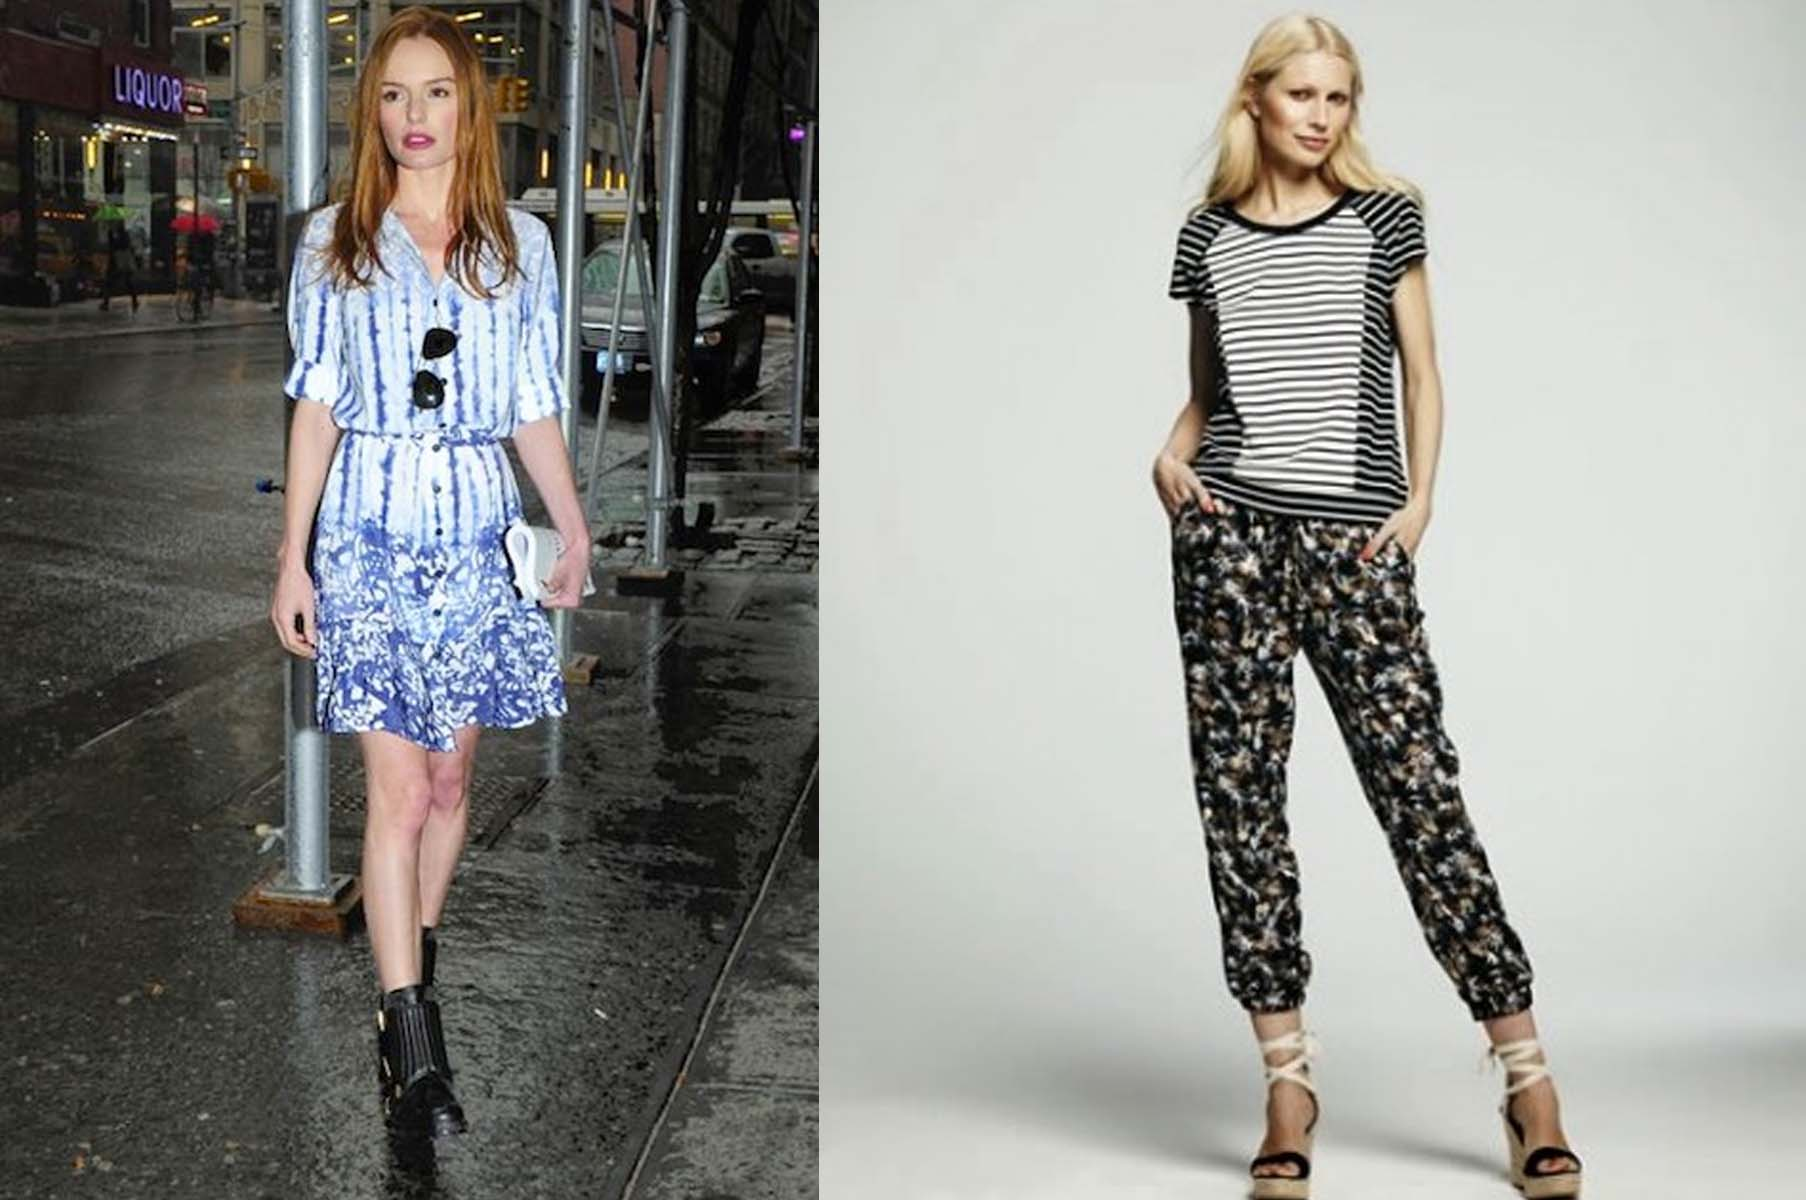 Kate Bosworth in Peter Som for DesigNation dress. $74 (left), and charmeuse soft pants.  $50, and striped raglan sweatshirt, $50. (Photos: Joonbug and Kohl's)